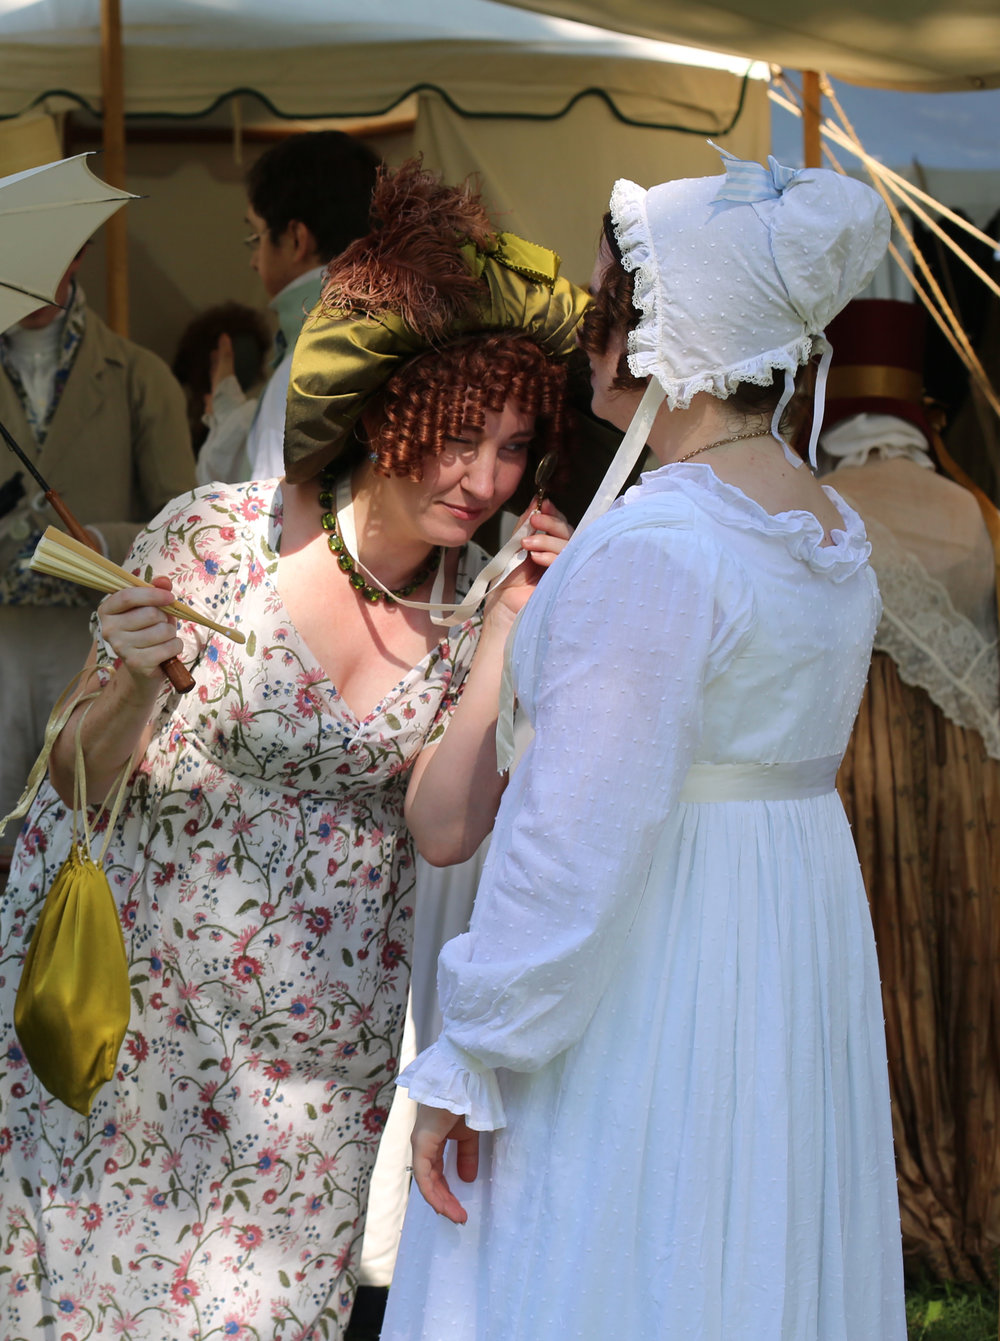 JAF+All+in+the+Details - Jane Austen Pageant at Locust Grove 2018